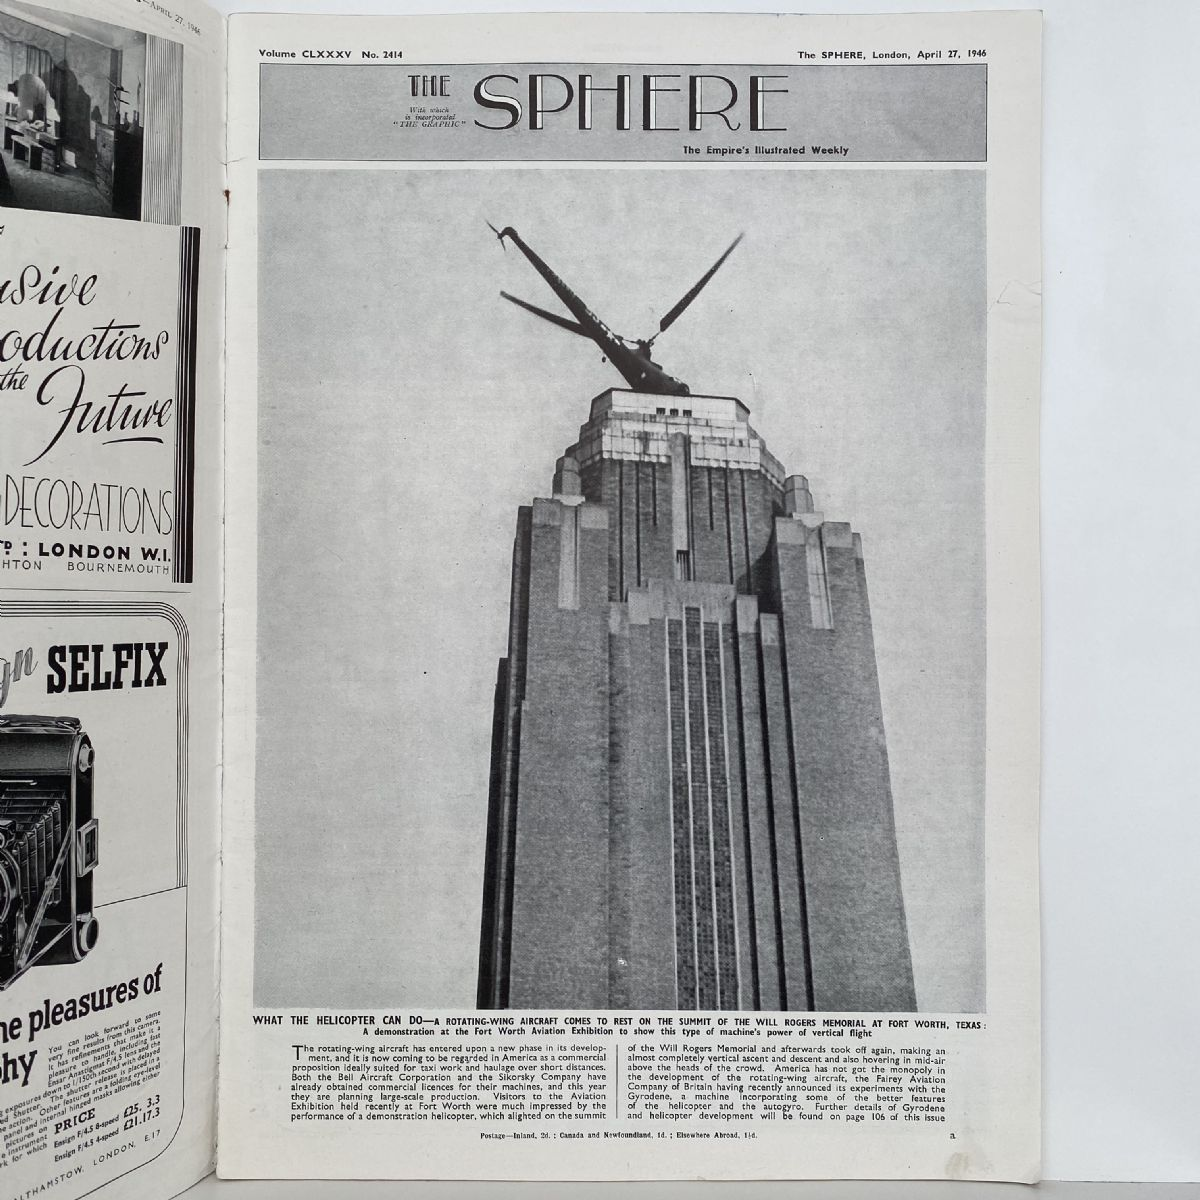 THE SPHERE The Empire's Illustrated Weekly. April 27 1946. No. 2414